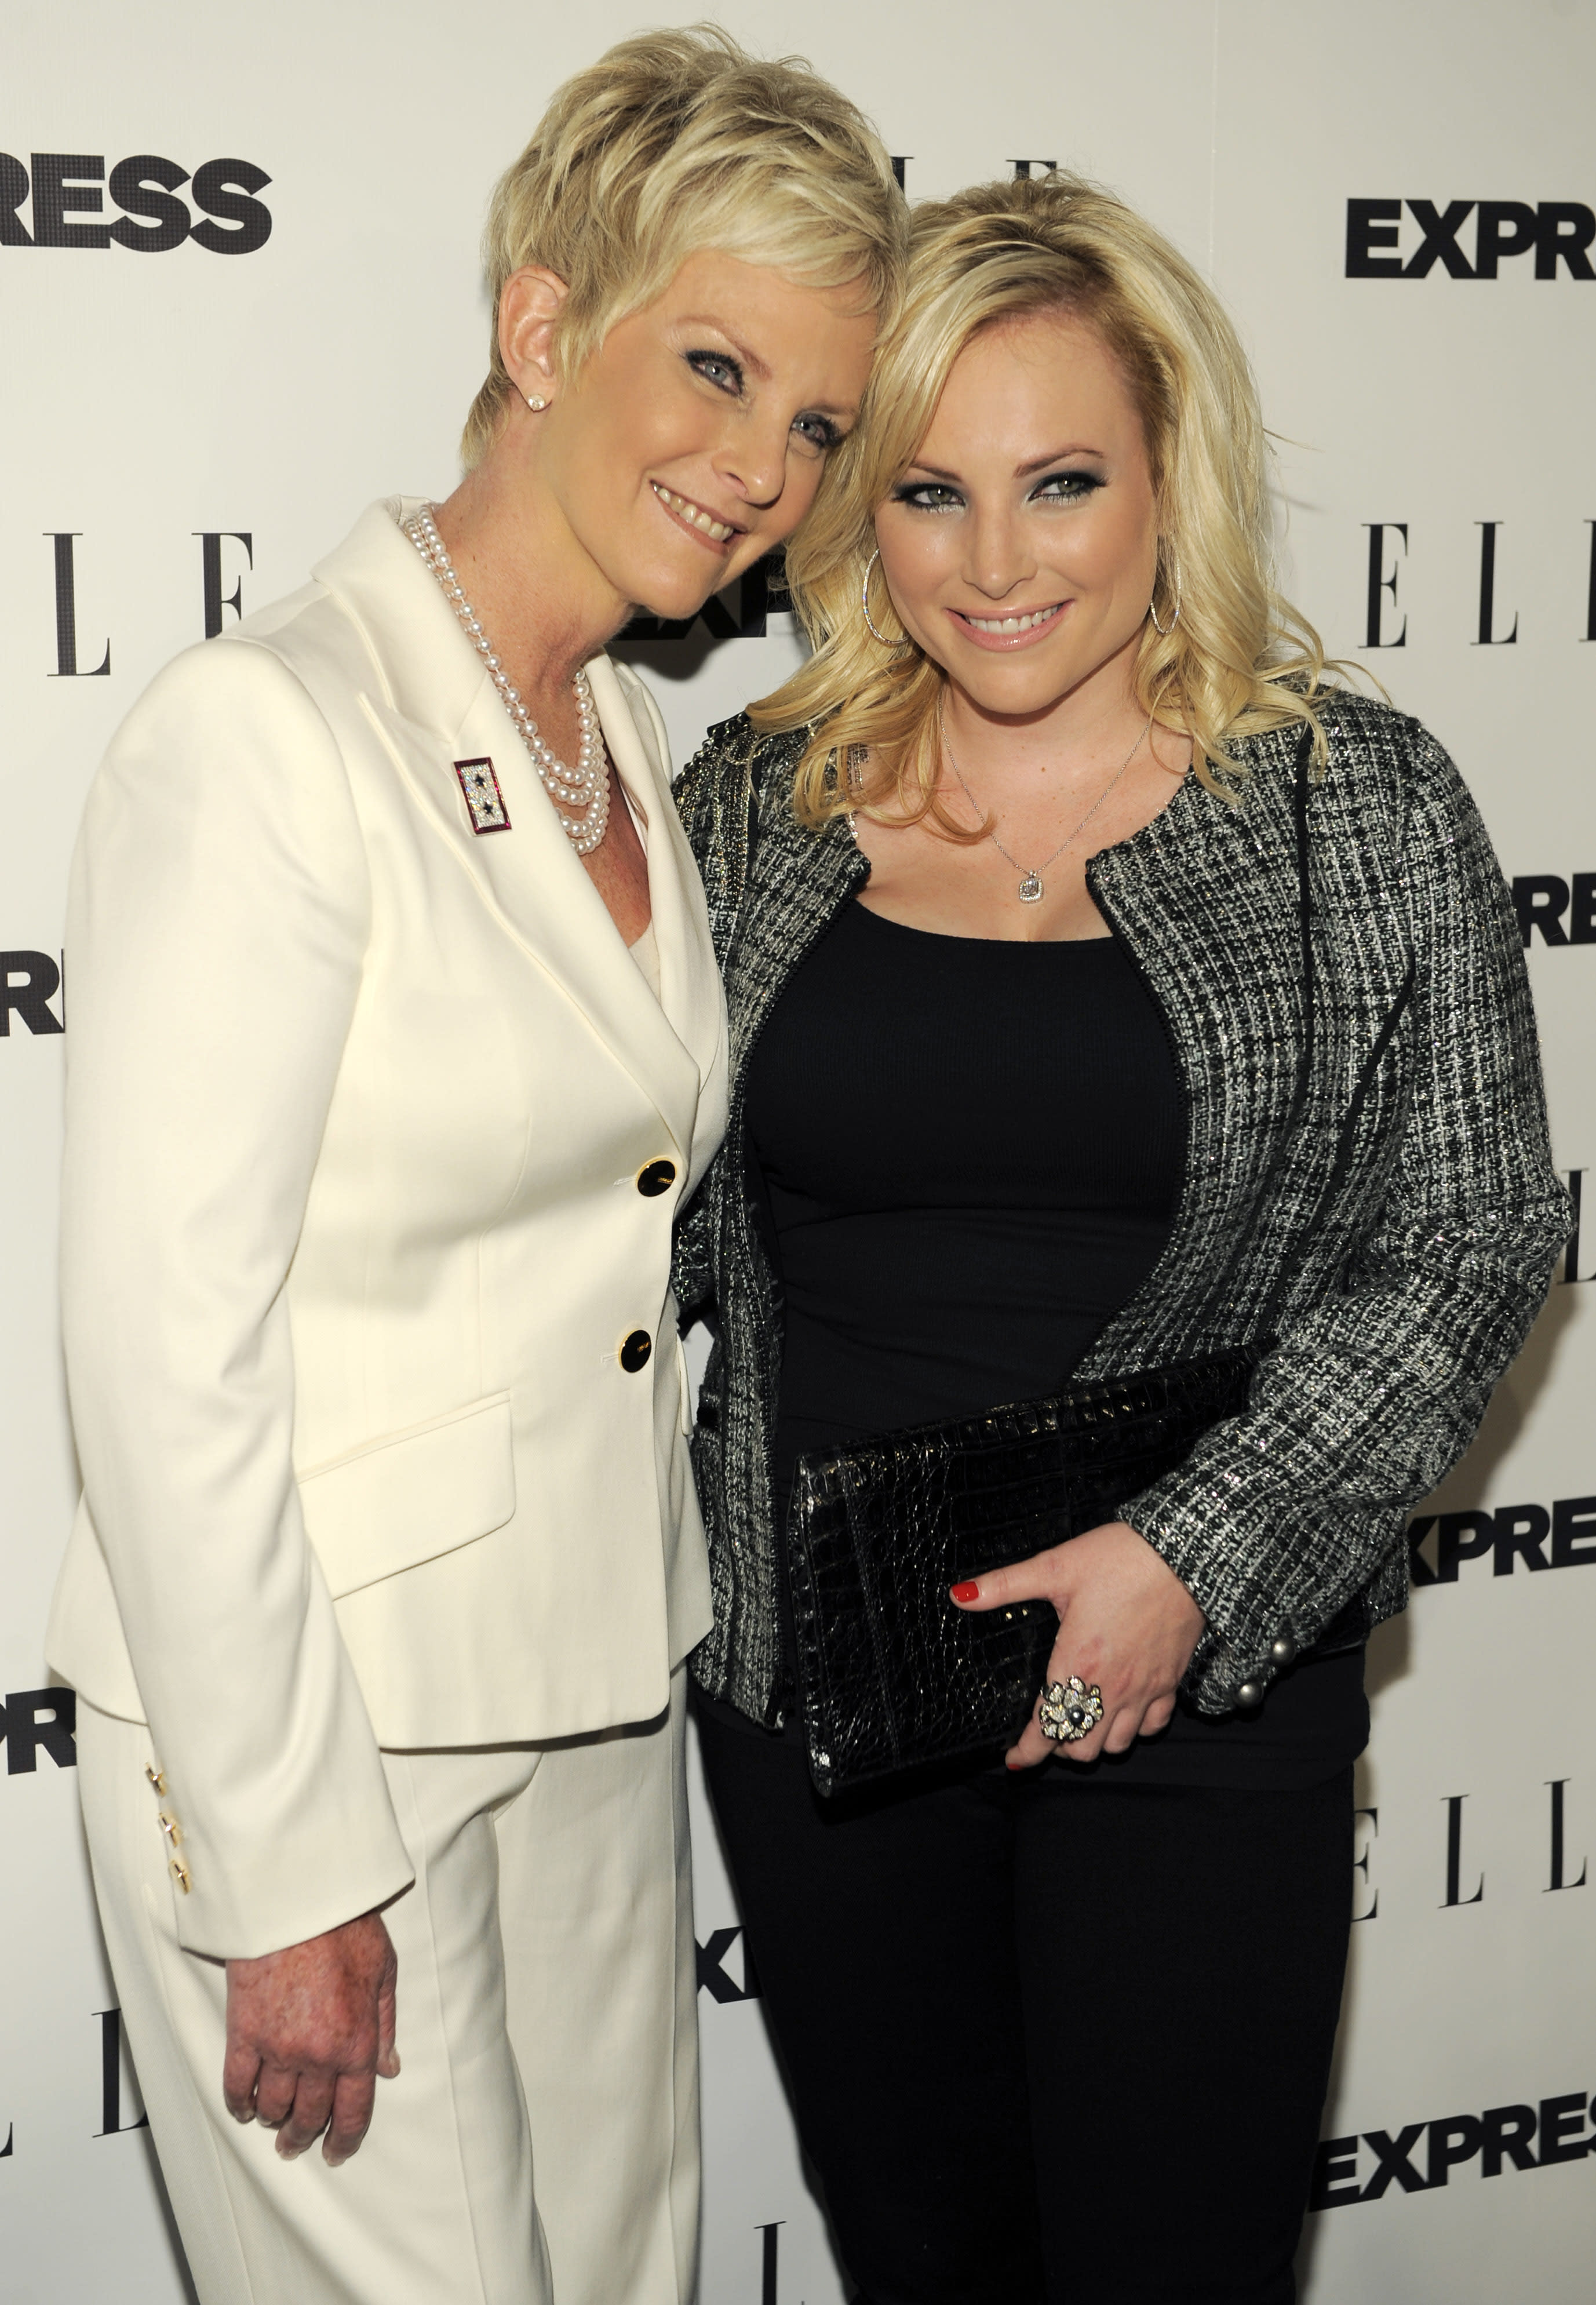 """Author and columnist Meghan McCain, right, poses with her mother Cindy as they arrive at the ELLE and Express """"25 at 25"""" event in West Hollywood, Calif., Thursday, Oct. 7, 2010. (AP Photo/Chris Pizzello)"""